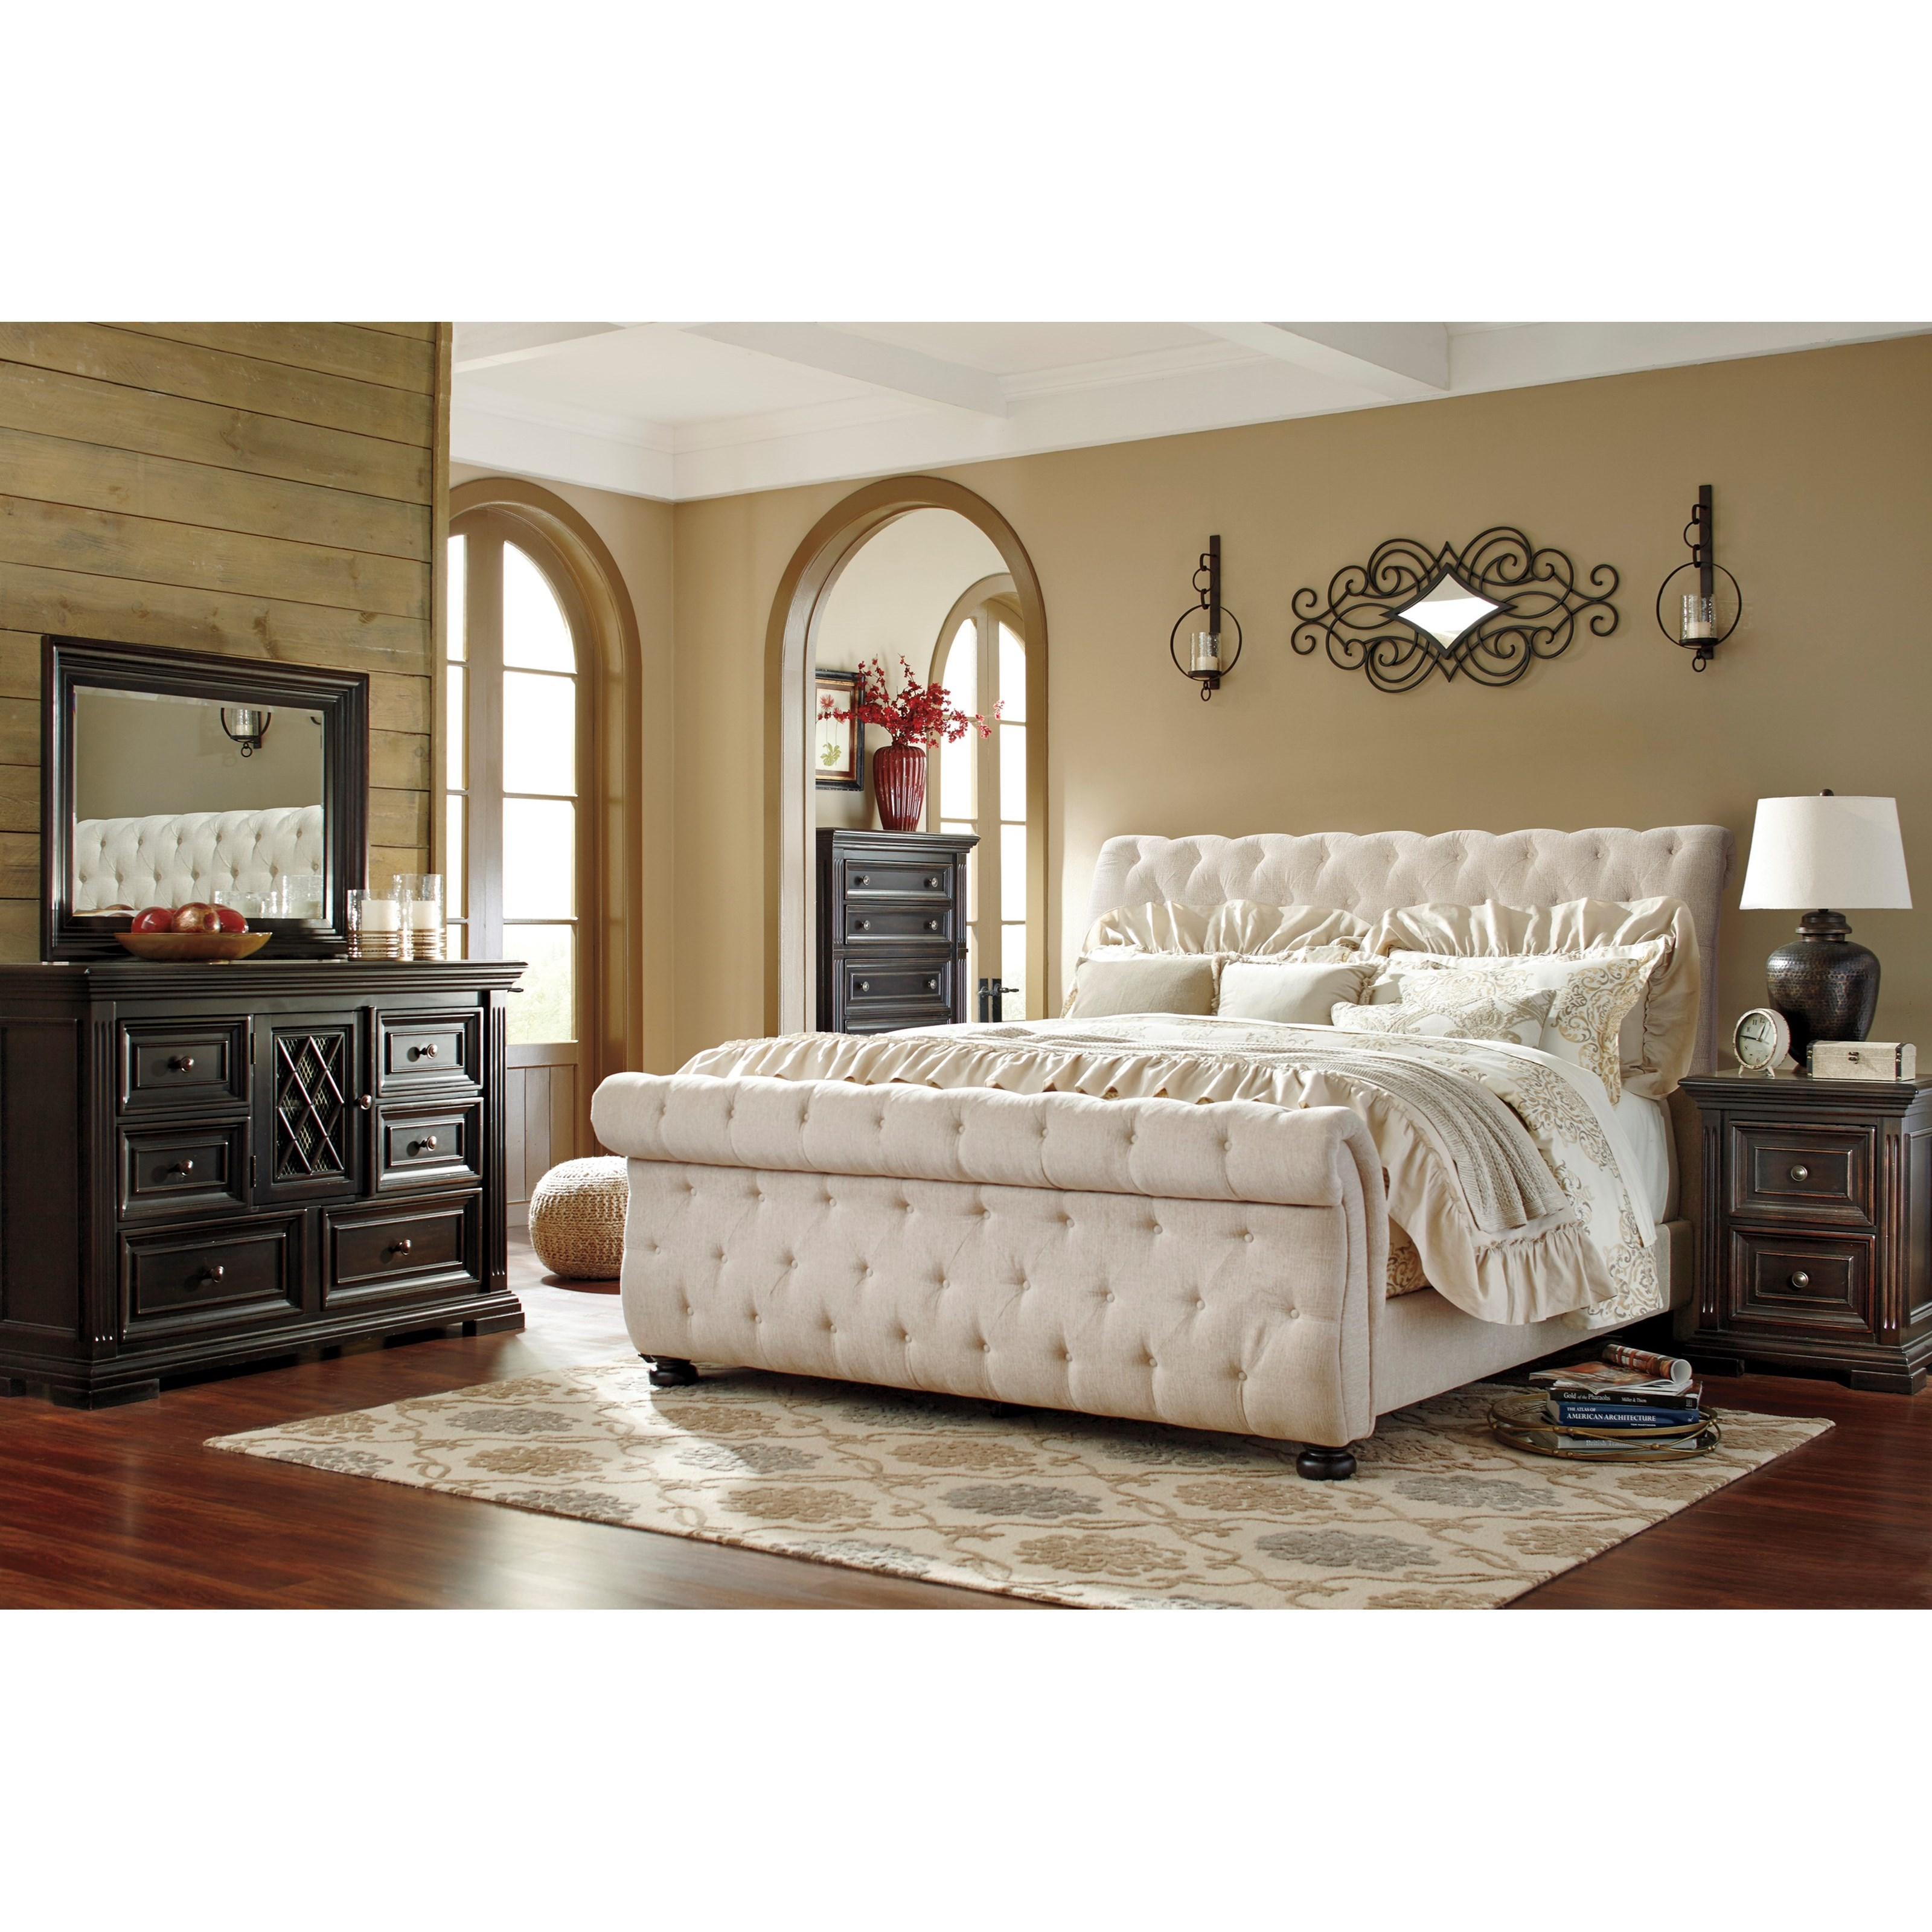 Tufted sleigh bed king - California King Upholstered Sleigh Bed